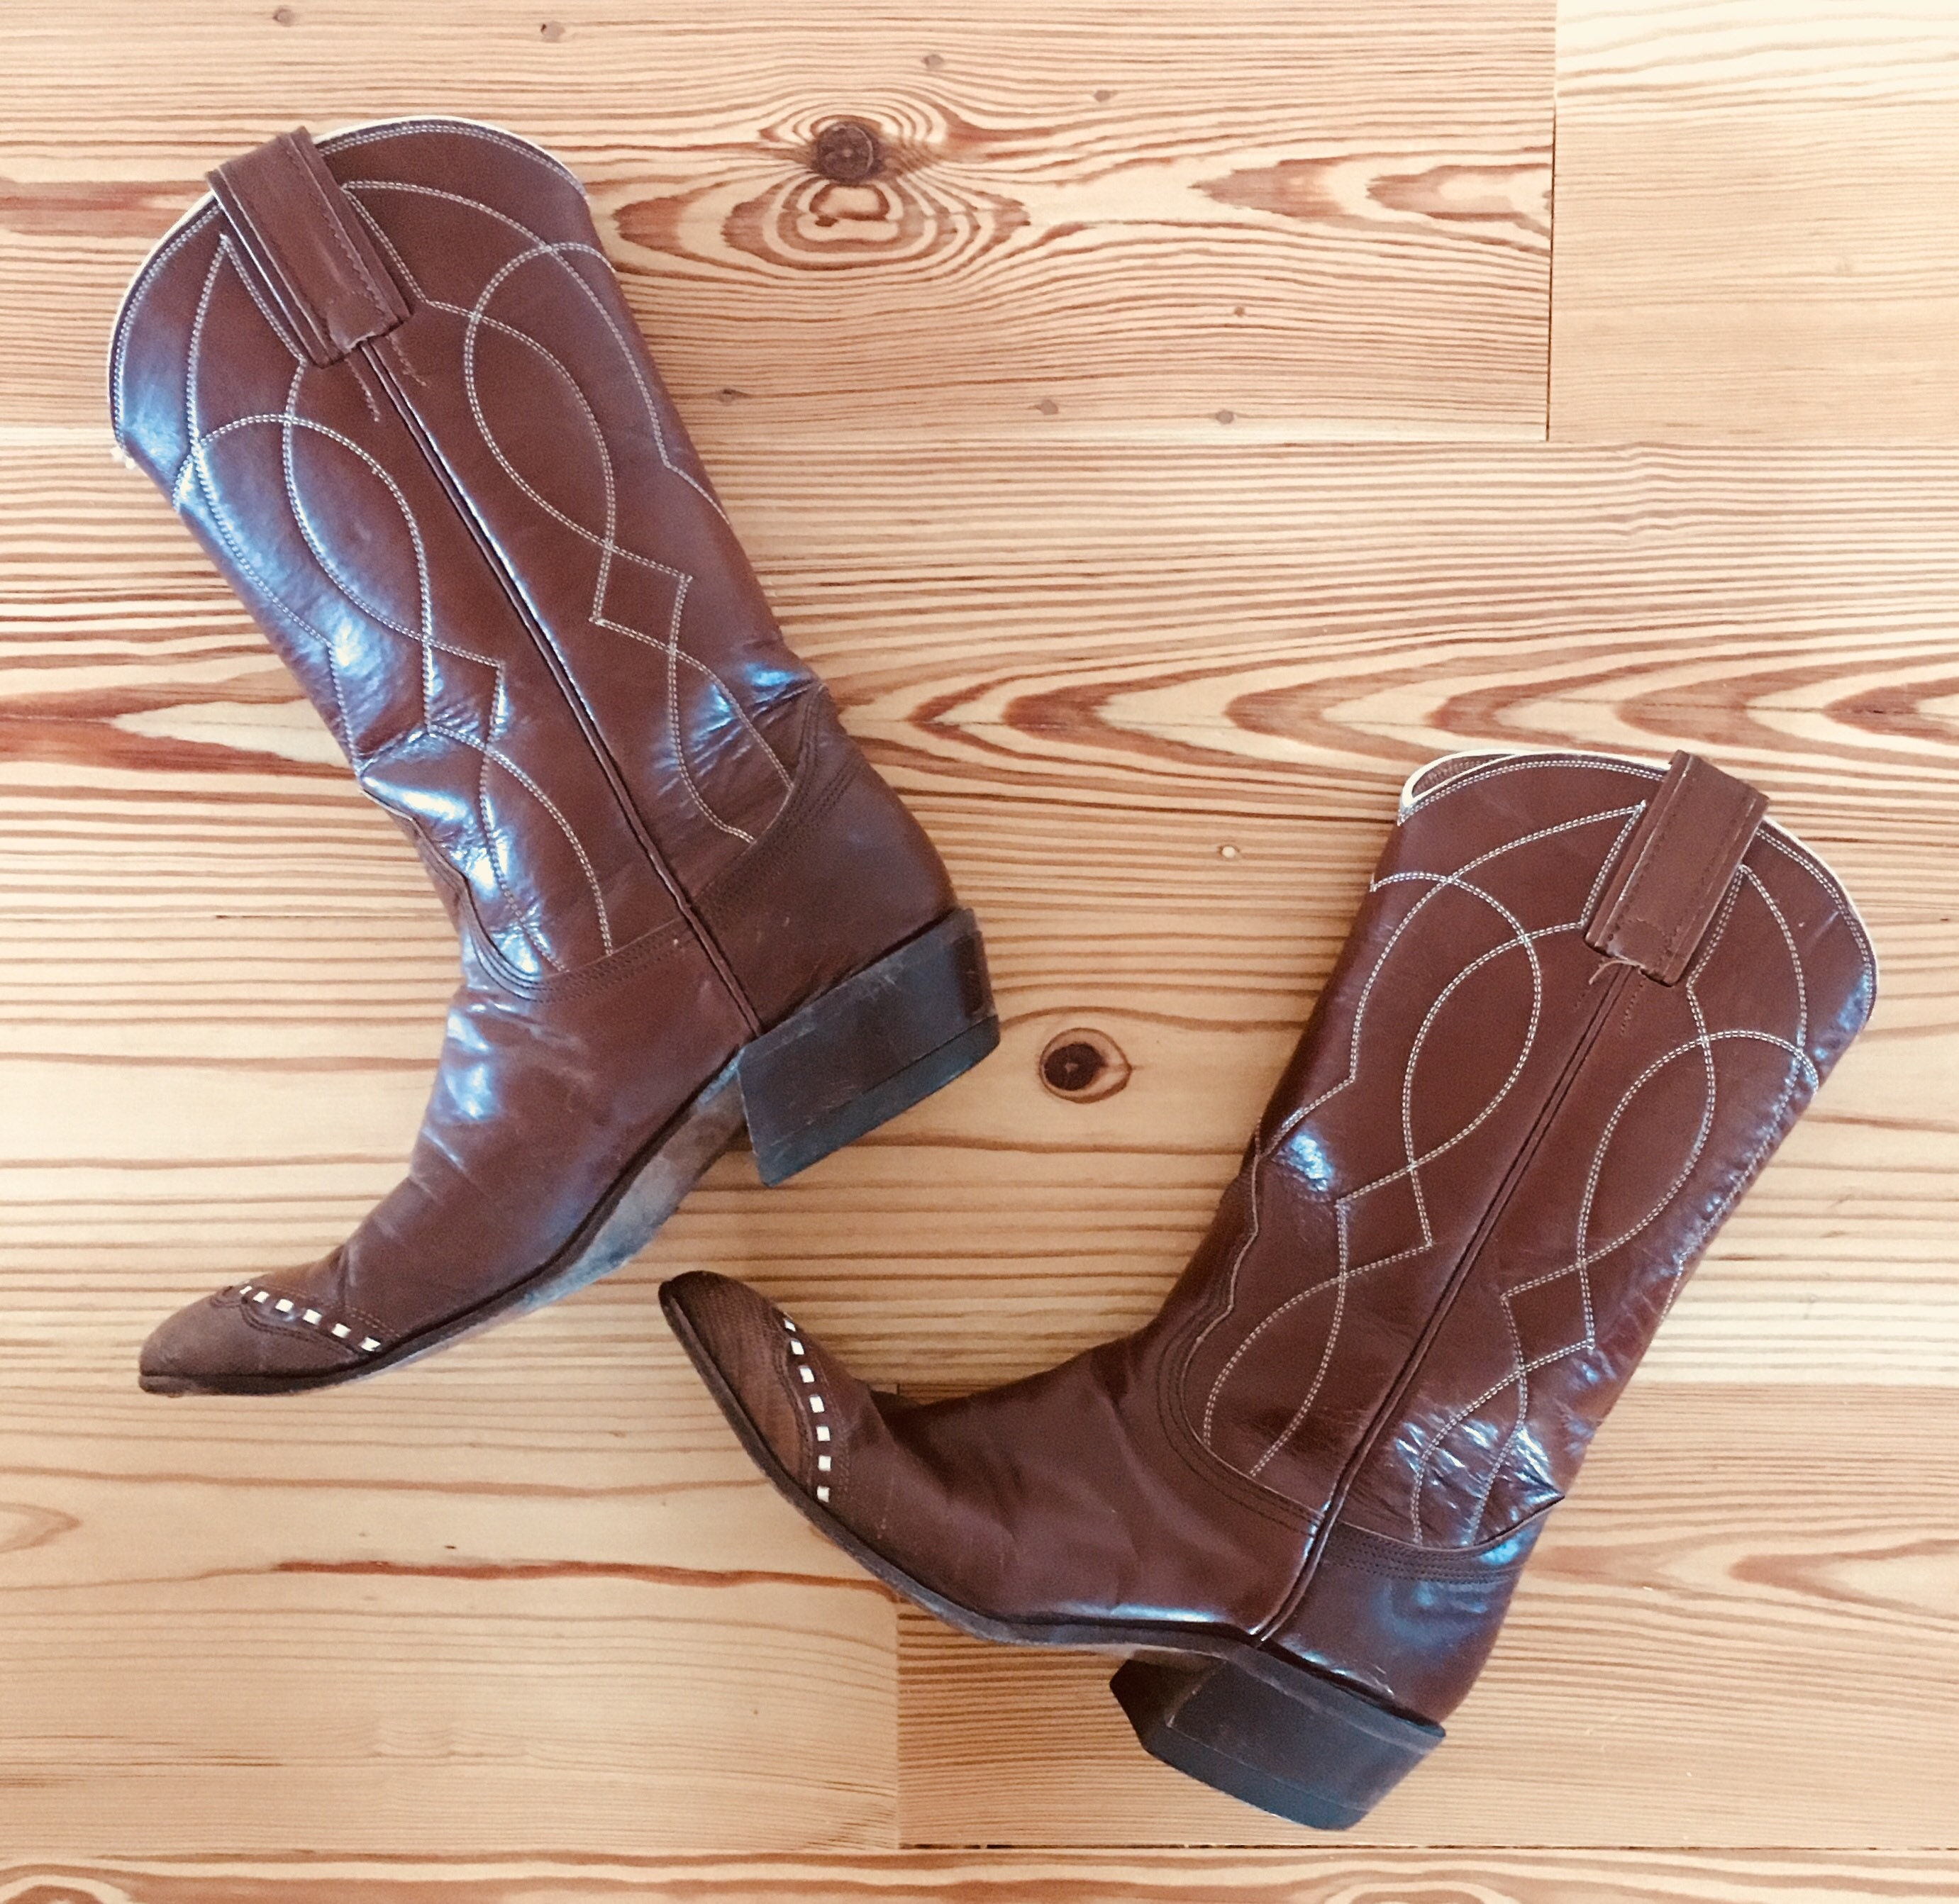 4b411800e12 Kids Cowboy Boots Nocona Texas Cowgirl Vintage Brown White Reptile ...